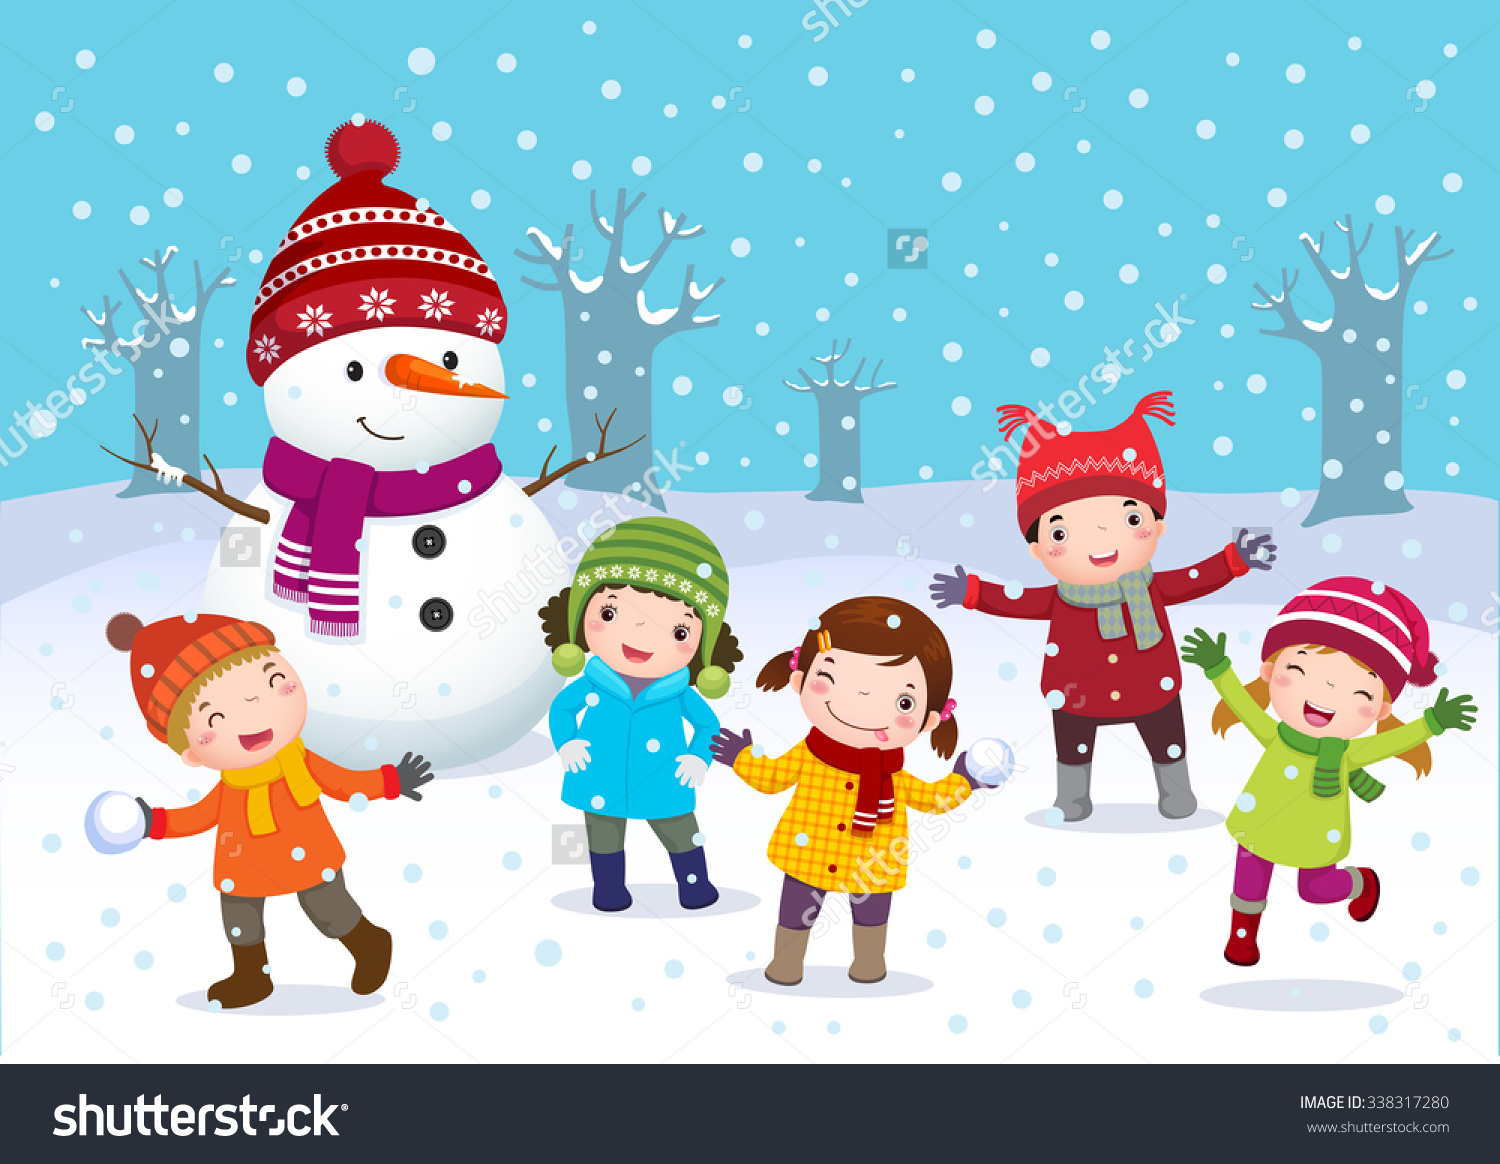 Winter Season Clipart Images.